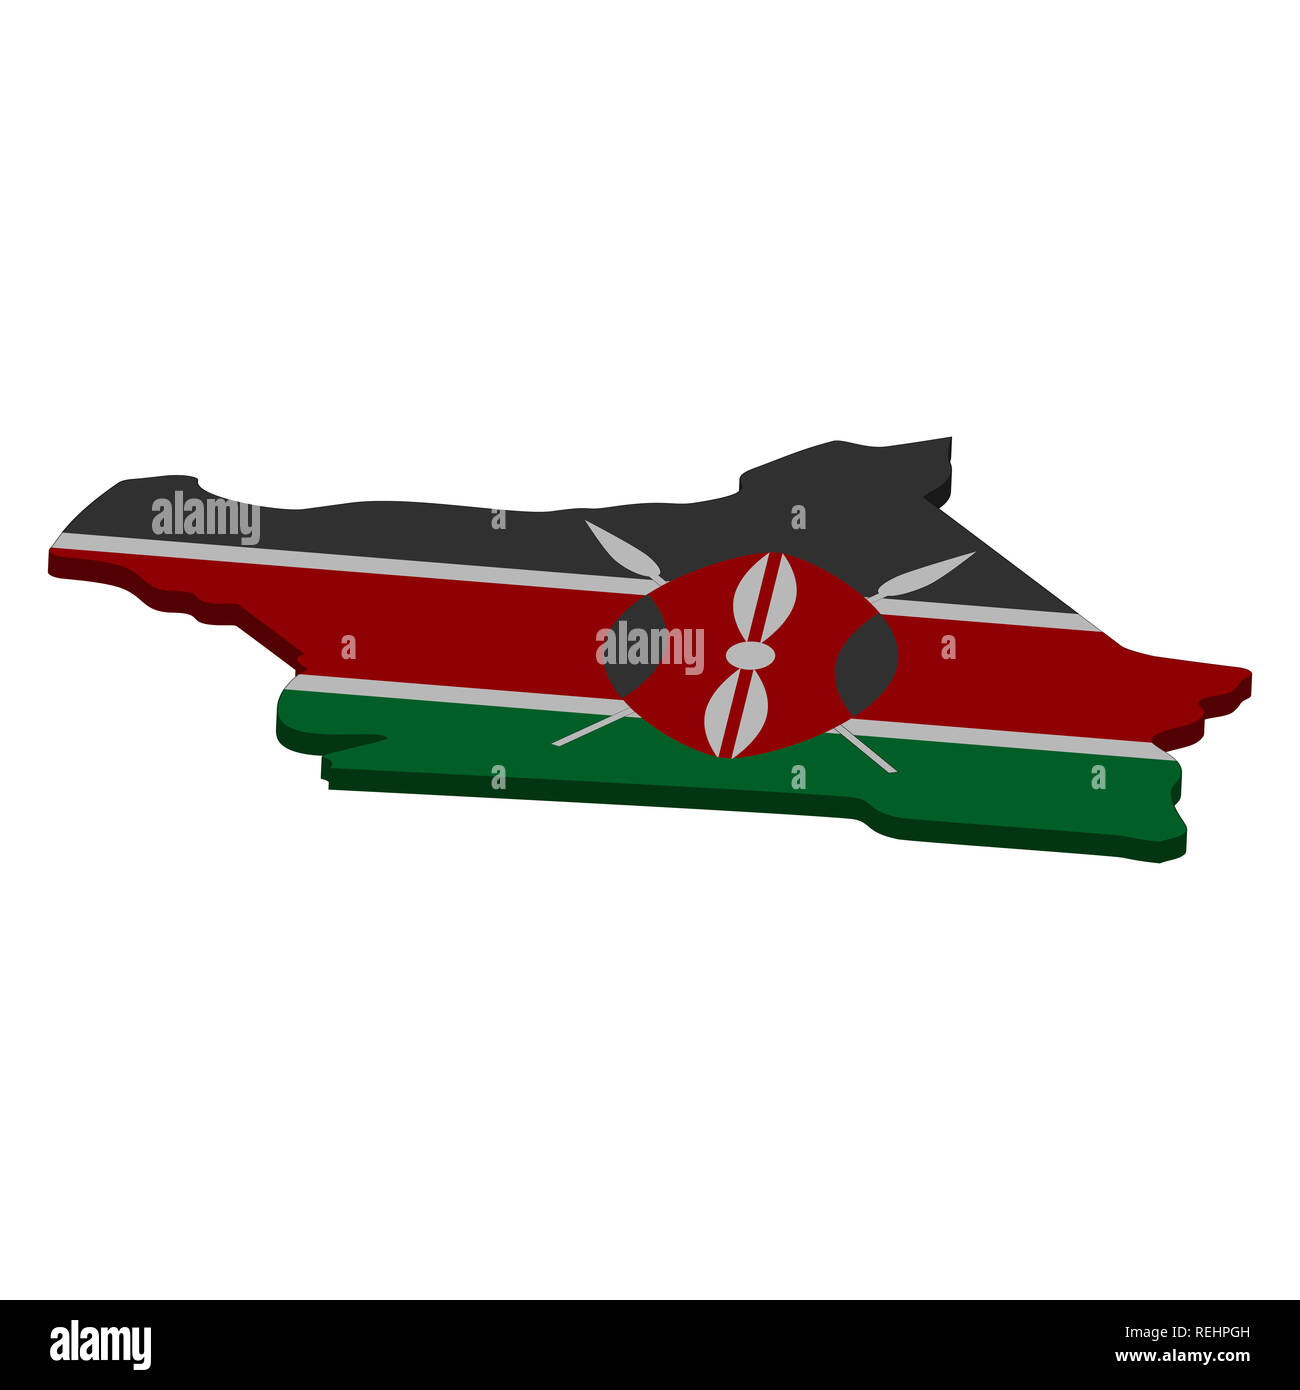 Map Kenya Flag Illustration Stock Photos & Map Kenya Flag ... on kenya police map, kenya road map, kenya citizen-news, kenya on map, uganda map, kenya men, kenya ladies, kenya native animals, kenya media gossip, kenya map map, kenya ethnic groups map, kenya people maasai, kenya globe map, ghana map, kenya heart map, kenya country map,